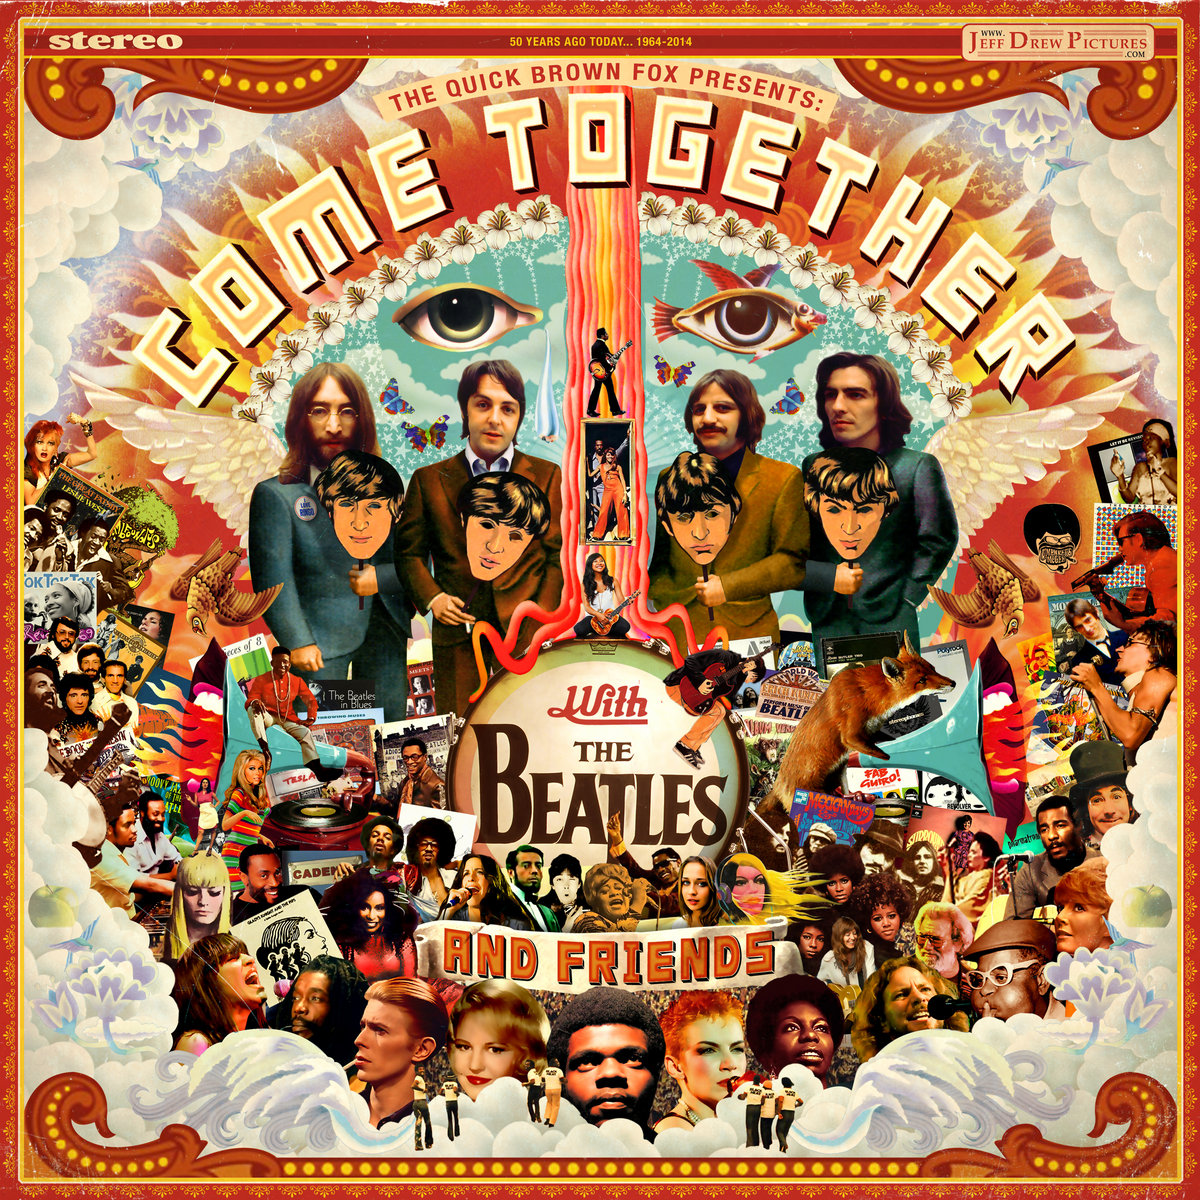 Come Together with The Beatles and Friends Mixtape von Jeff Drew | The Quick Brown Fox Mashup/Mixtape als Stream und Free Download